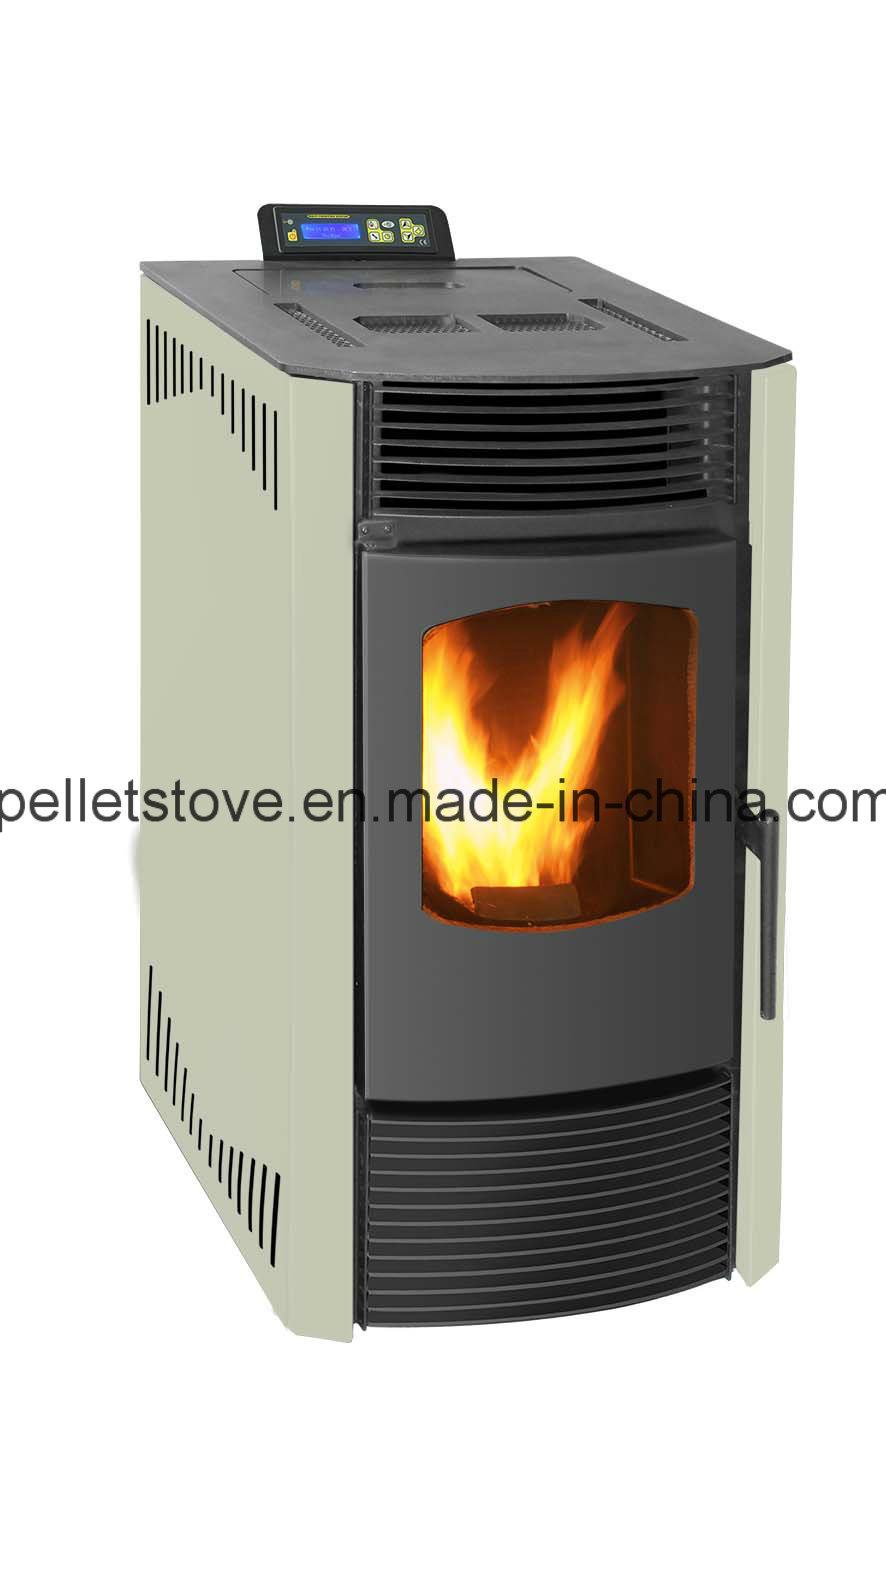 TUV Certified Indoor Using Automatic Wood Pellet Stove with Remote Control